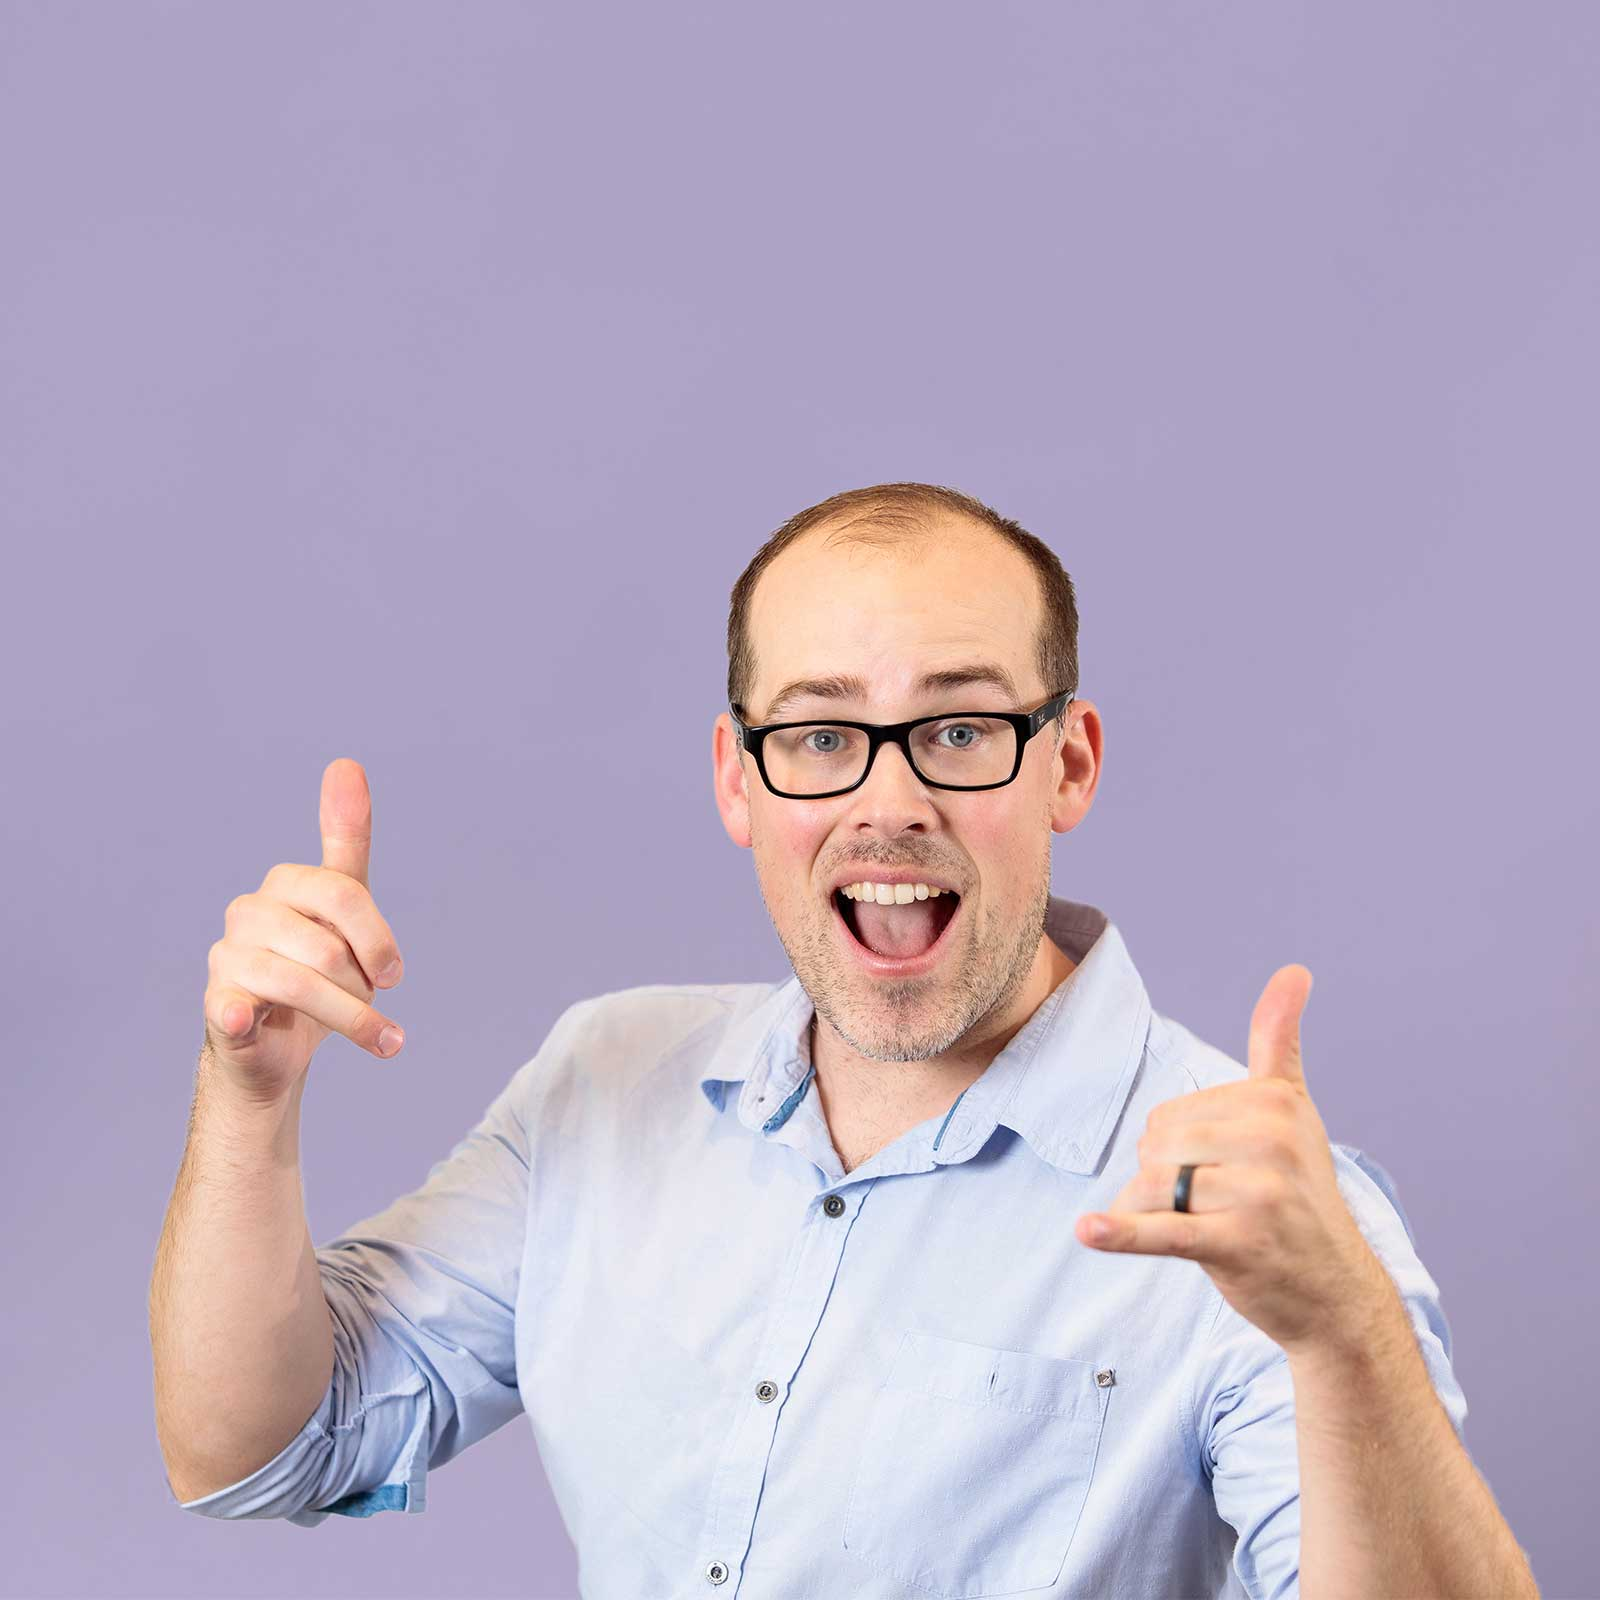 A portrait of Martin Sully, a man with glasses holds his hands out and has his thumbs up. He's against a purple background.